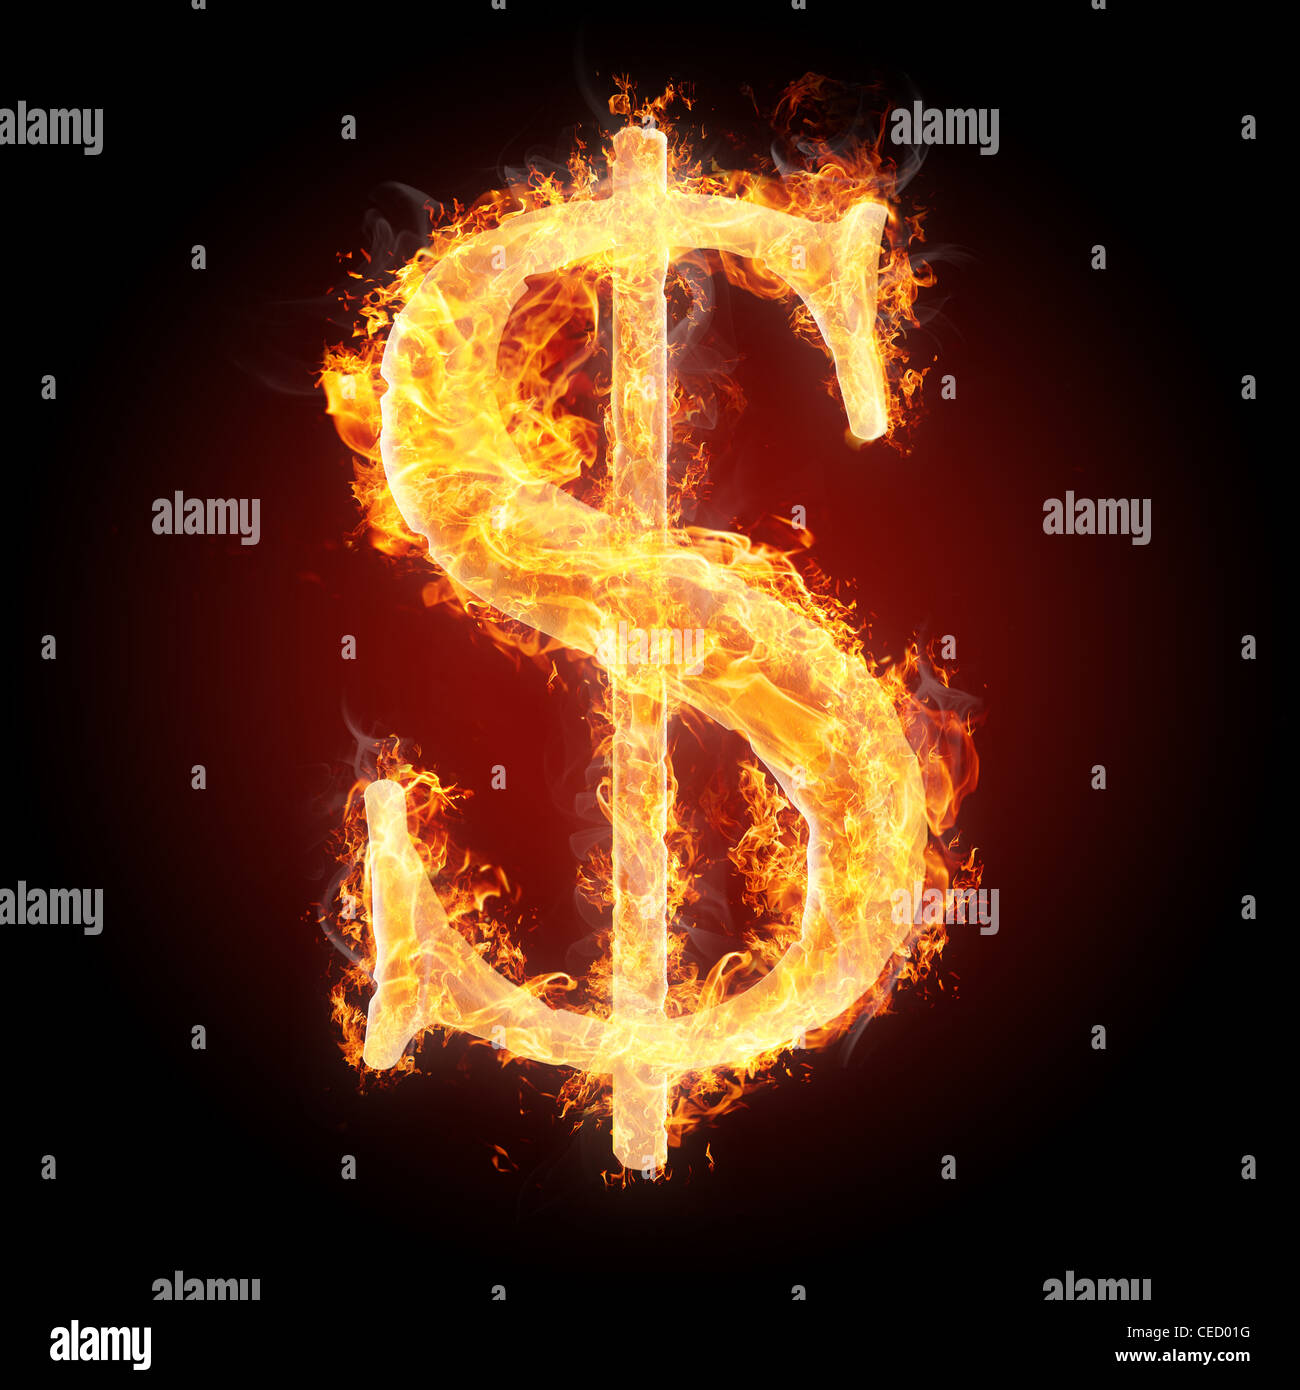 Letters and symbols in fire dollar sign stock photo 43311340 alamy letters and symbols in fire dollar sign thecheapjerseys Image collections